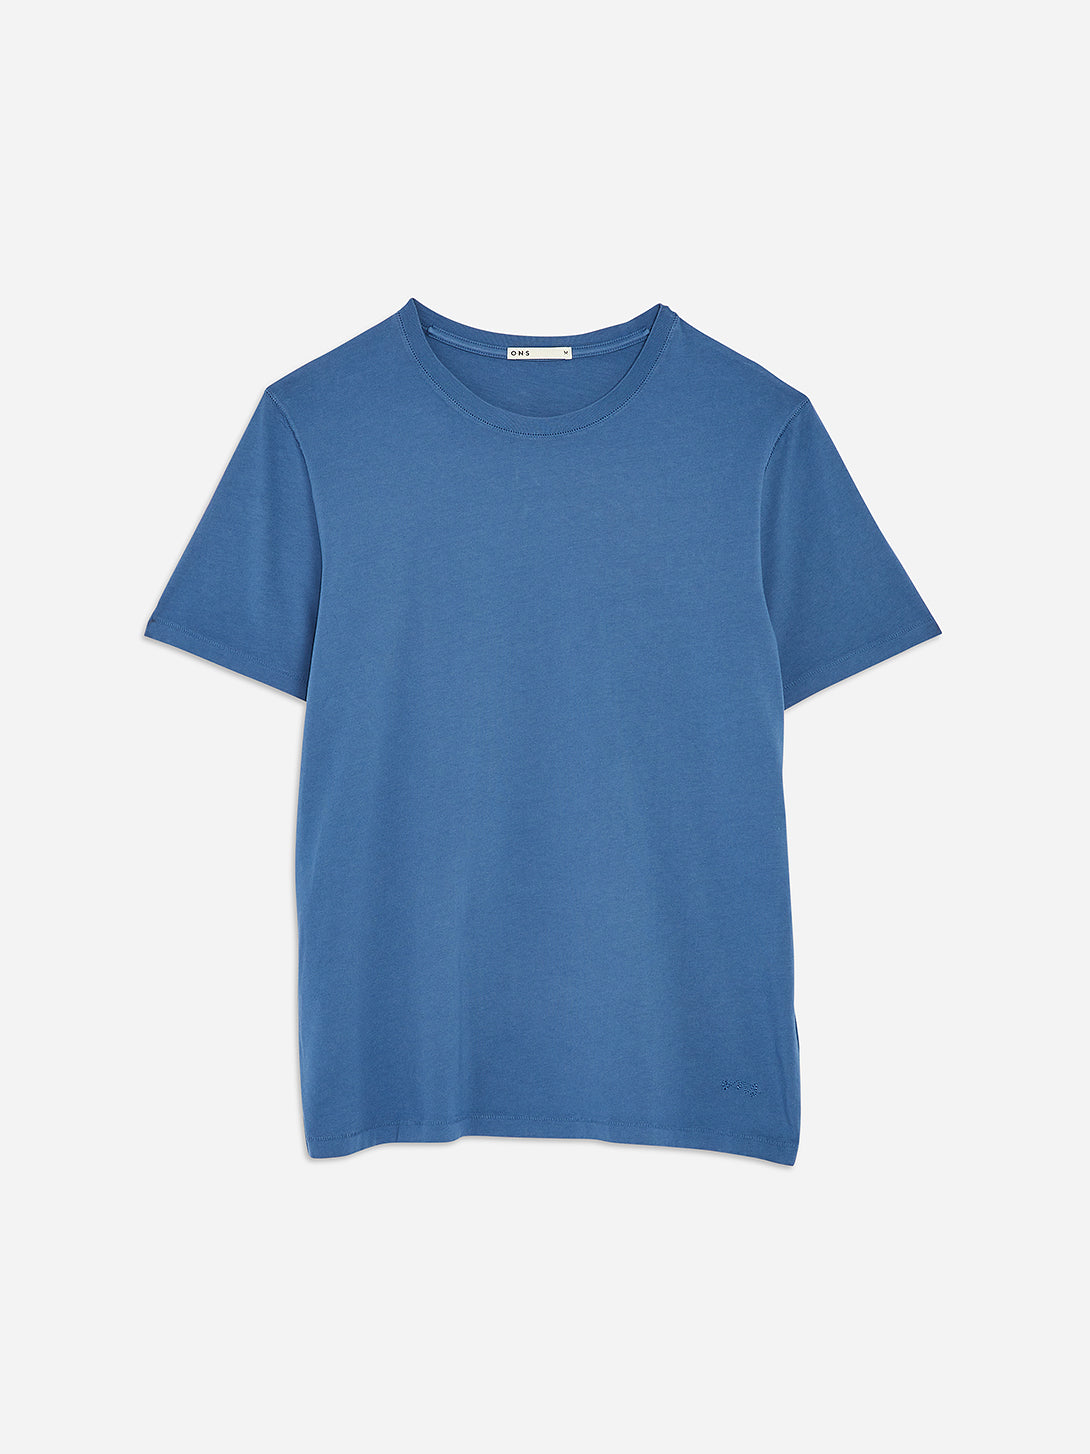 Ensign Blue Village Crew Neck Tee Men's supima cotton tees ONS Clothing